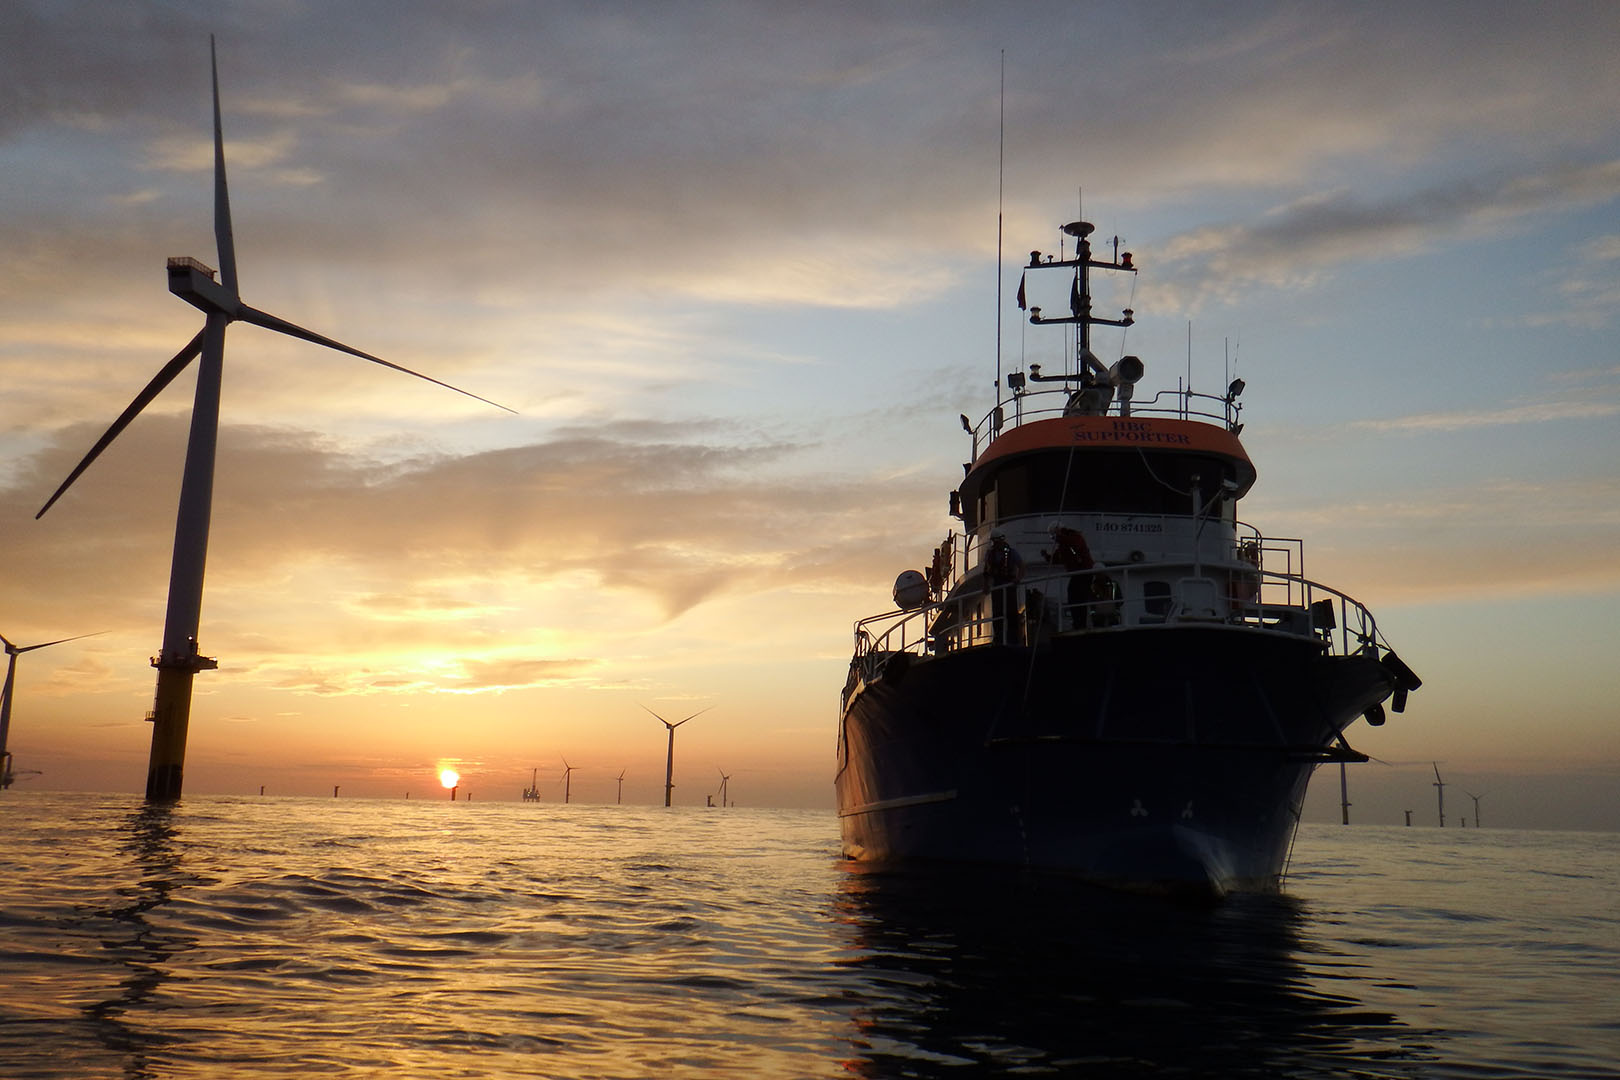 HBC Supporter Sunset in Windfarm